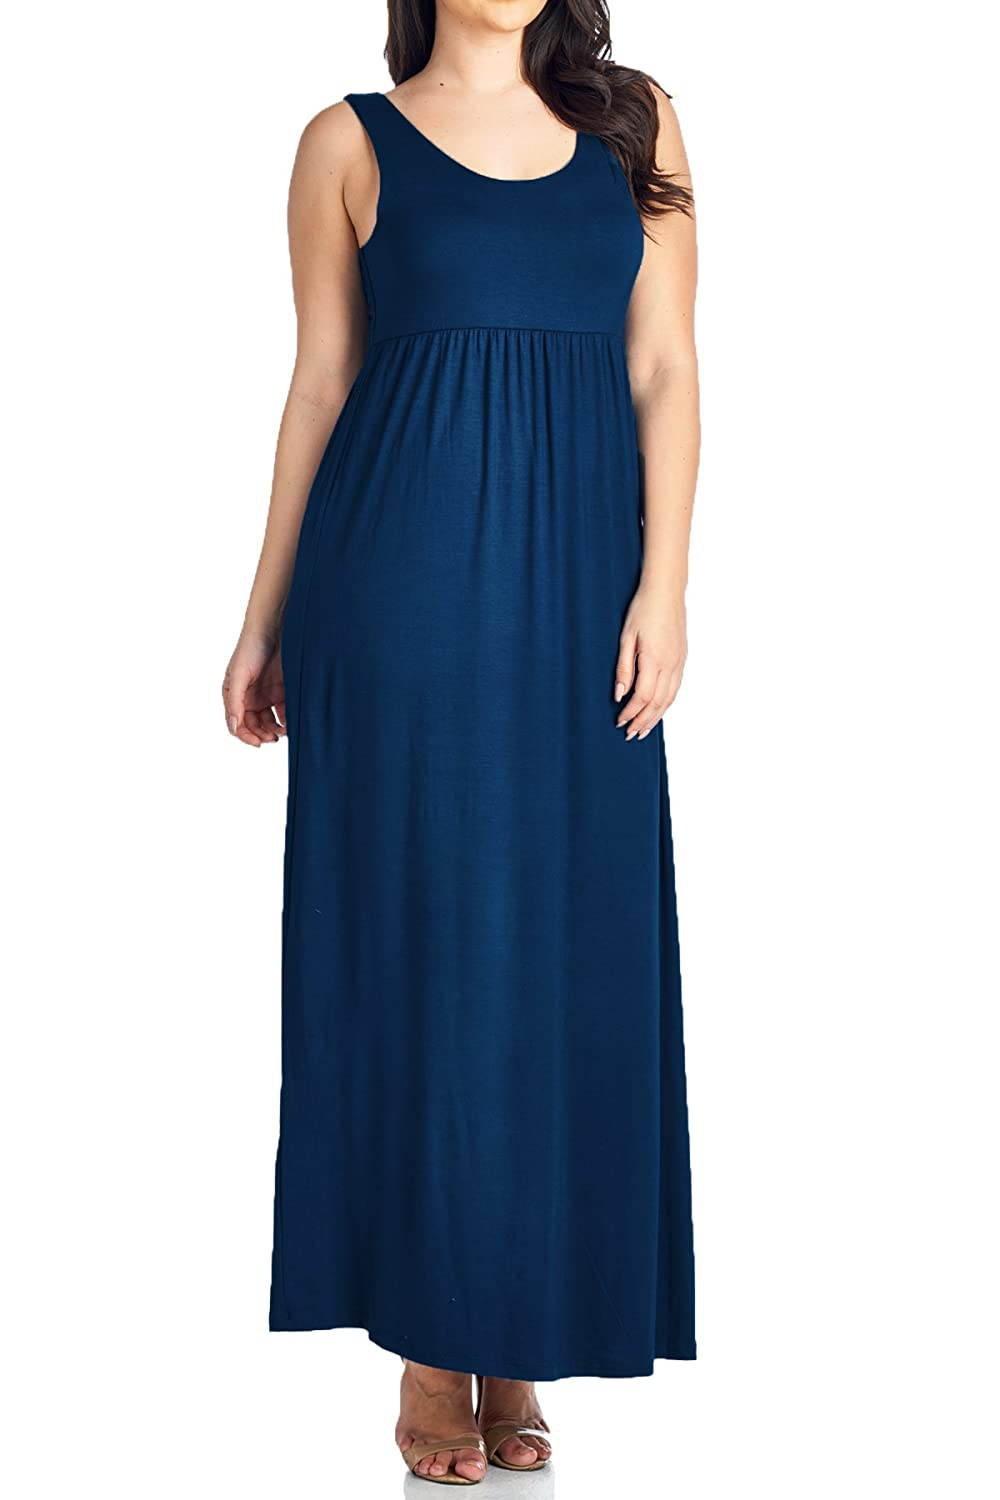 8256bd5af31 Beachcoco Women s Plus Size Maxi Tank Dress at Amazon Women s Clothing  store